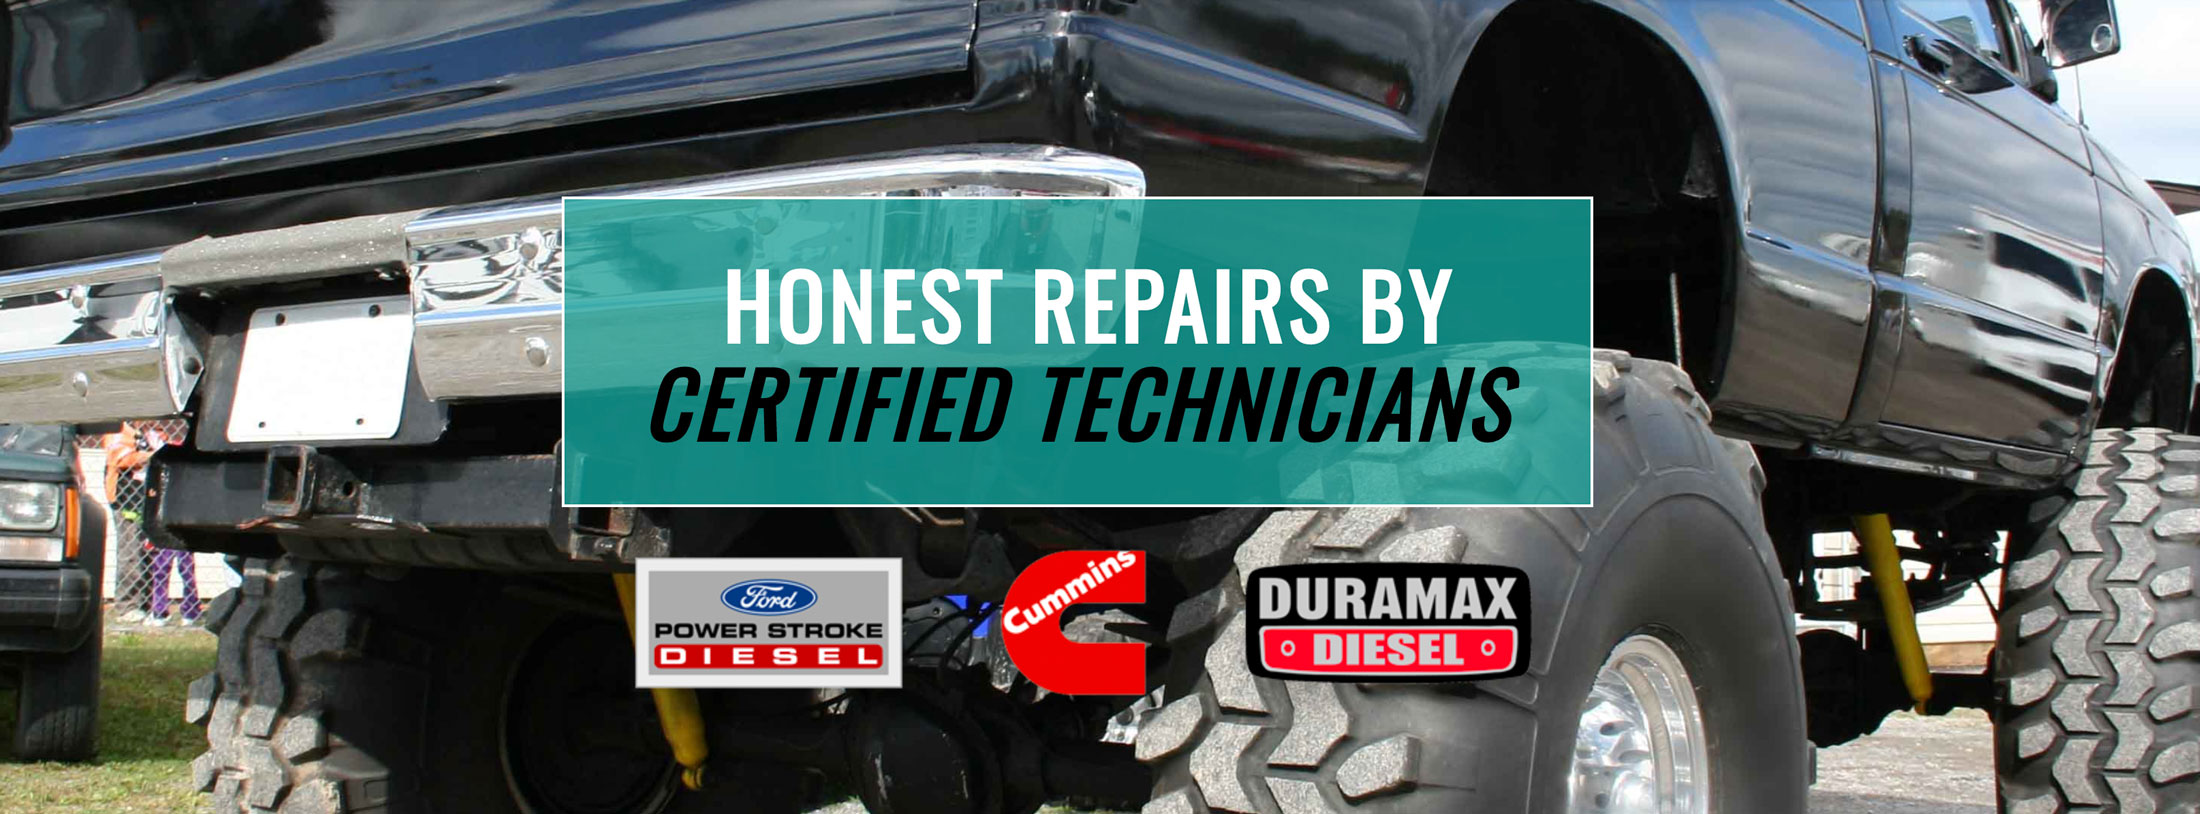 Diesel Truck with Honest Repairs By Certified Technicians banner